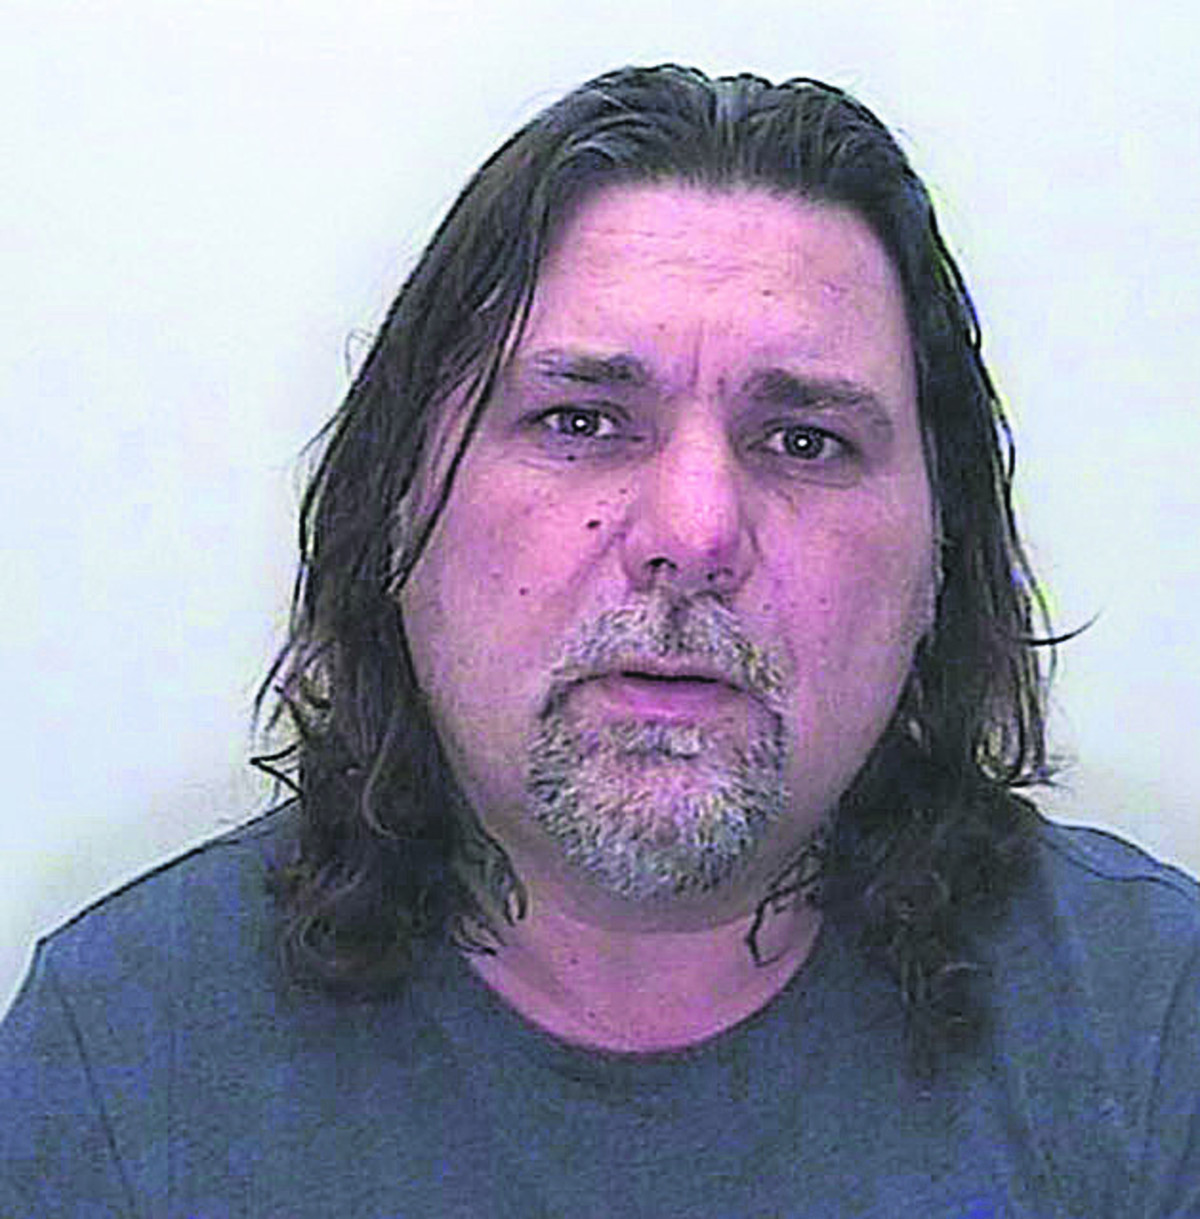 Dealer with huge drugs hoard jailed for two years